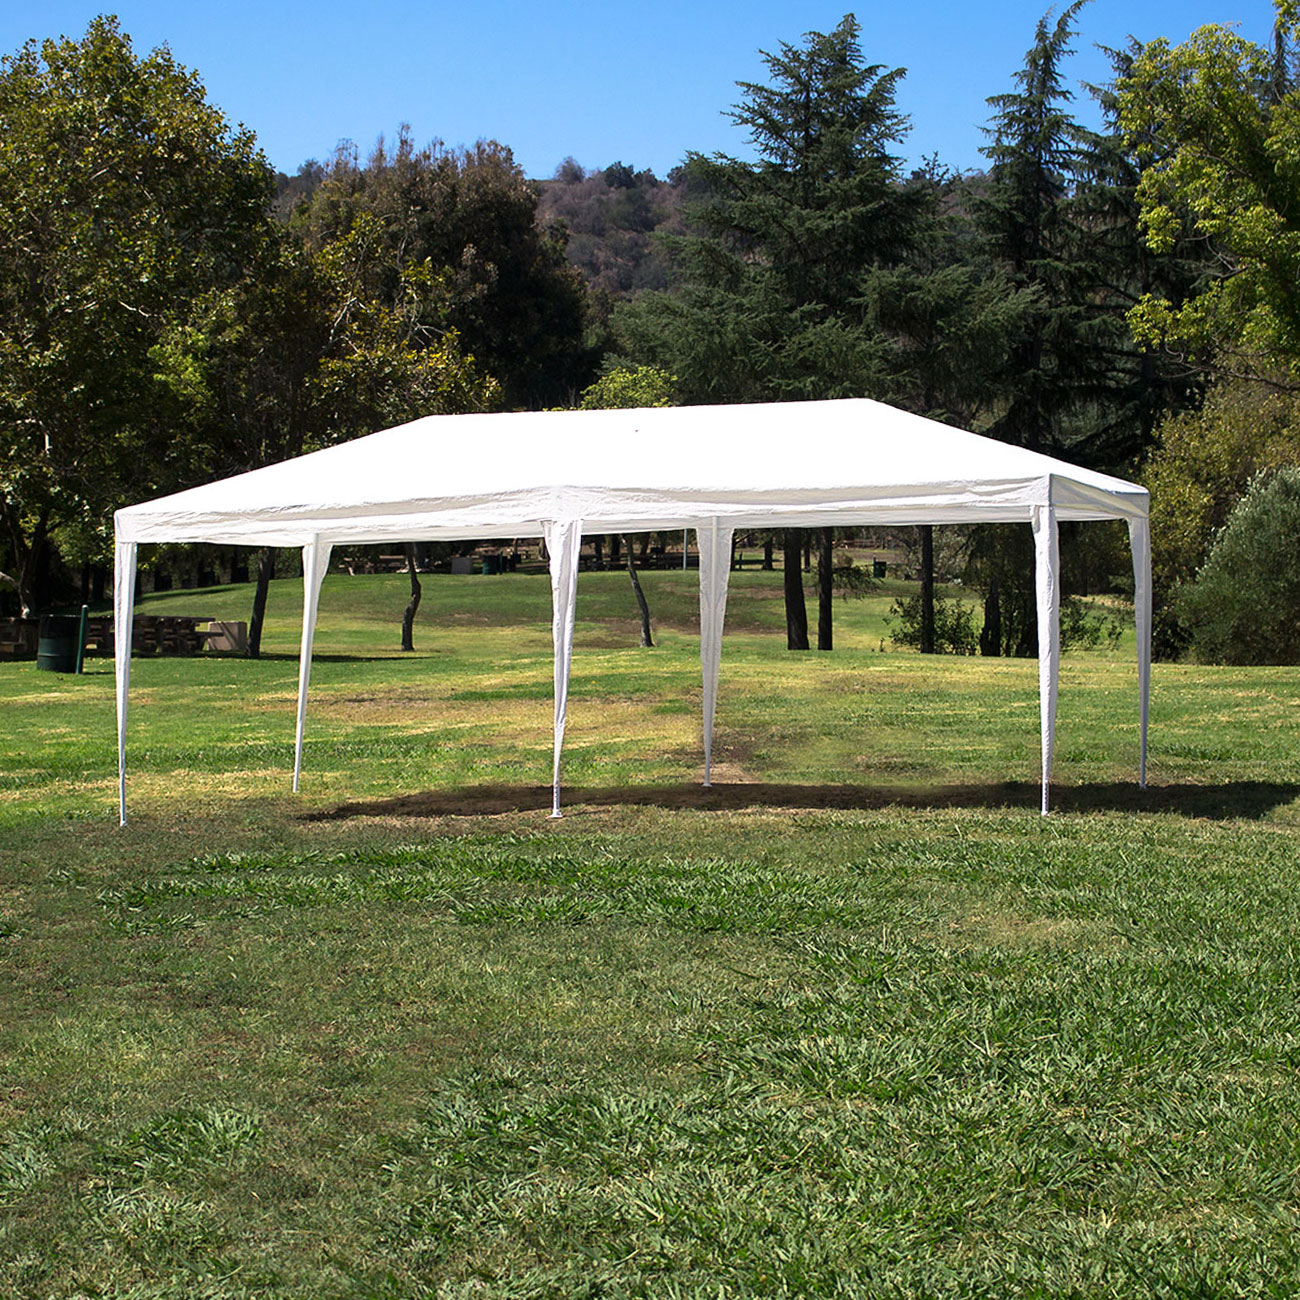 Outdoor 10/'x20/' Canopy Party Wedding Tent Heavy duty Gazebo Pavilion Event Cater